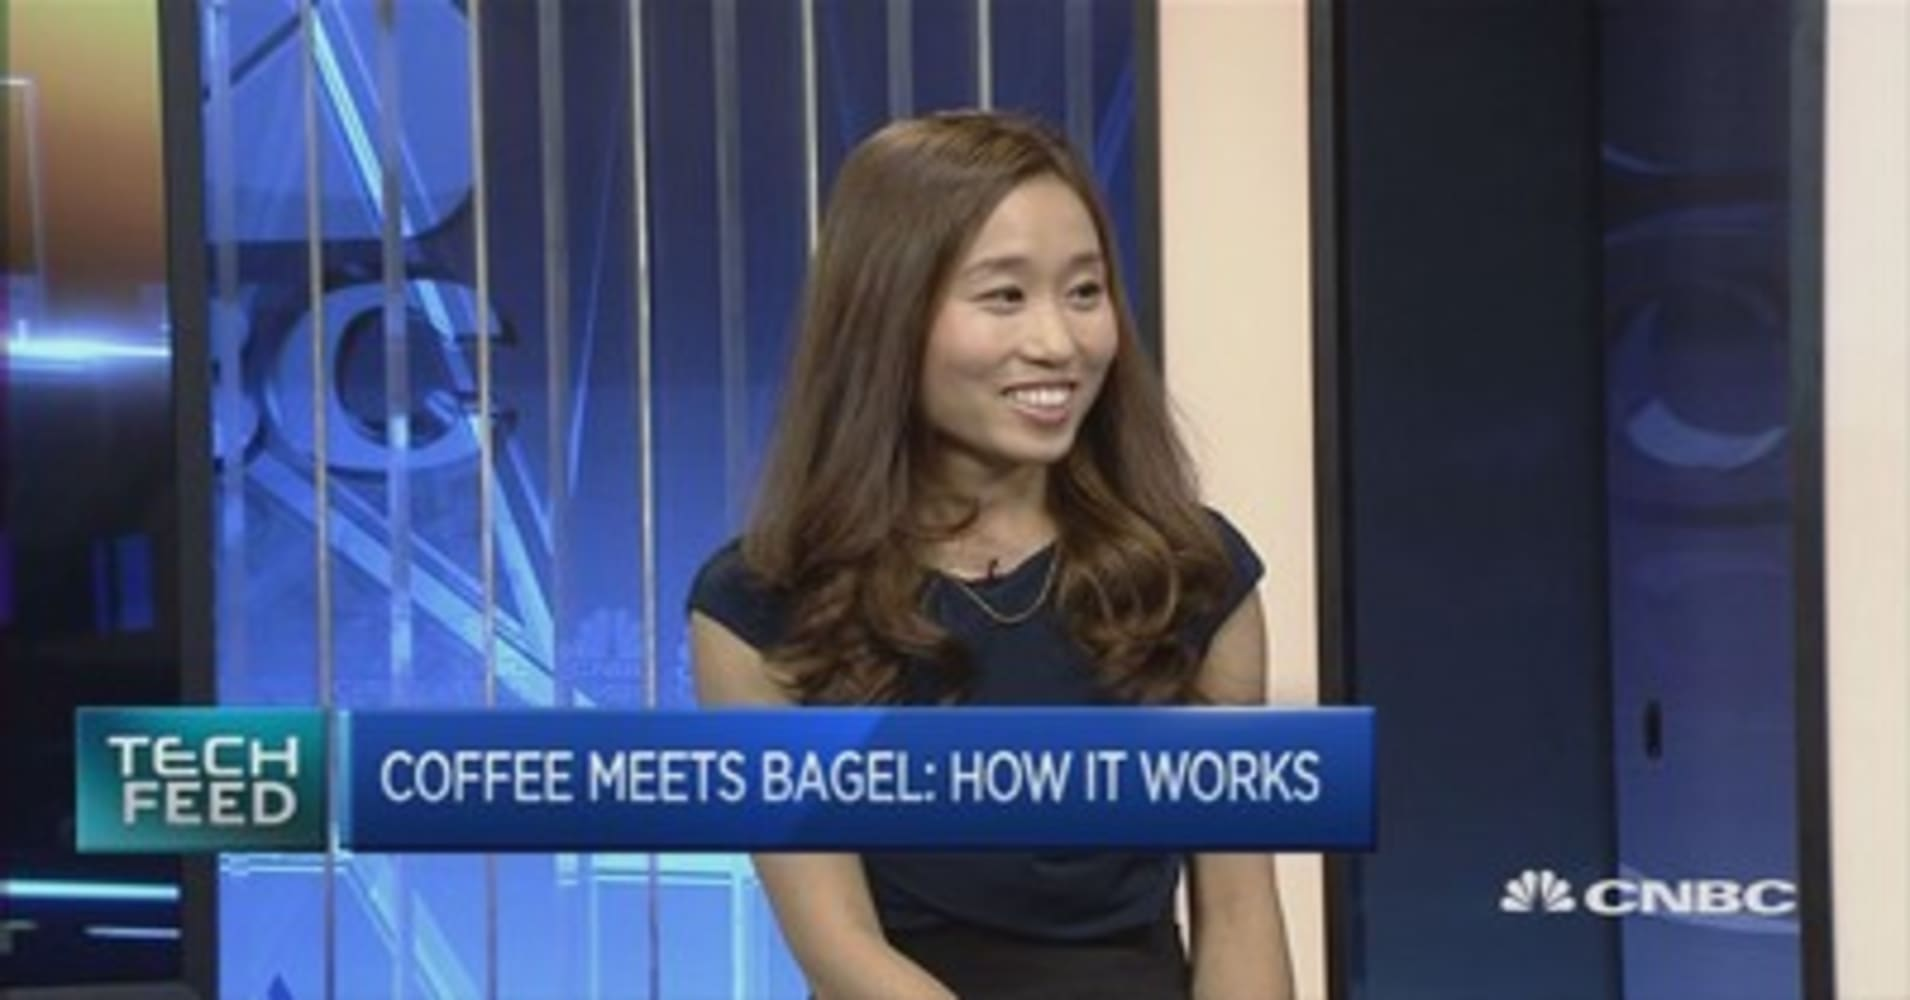 How much is coffee meets bagel worth now